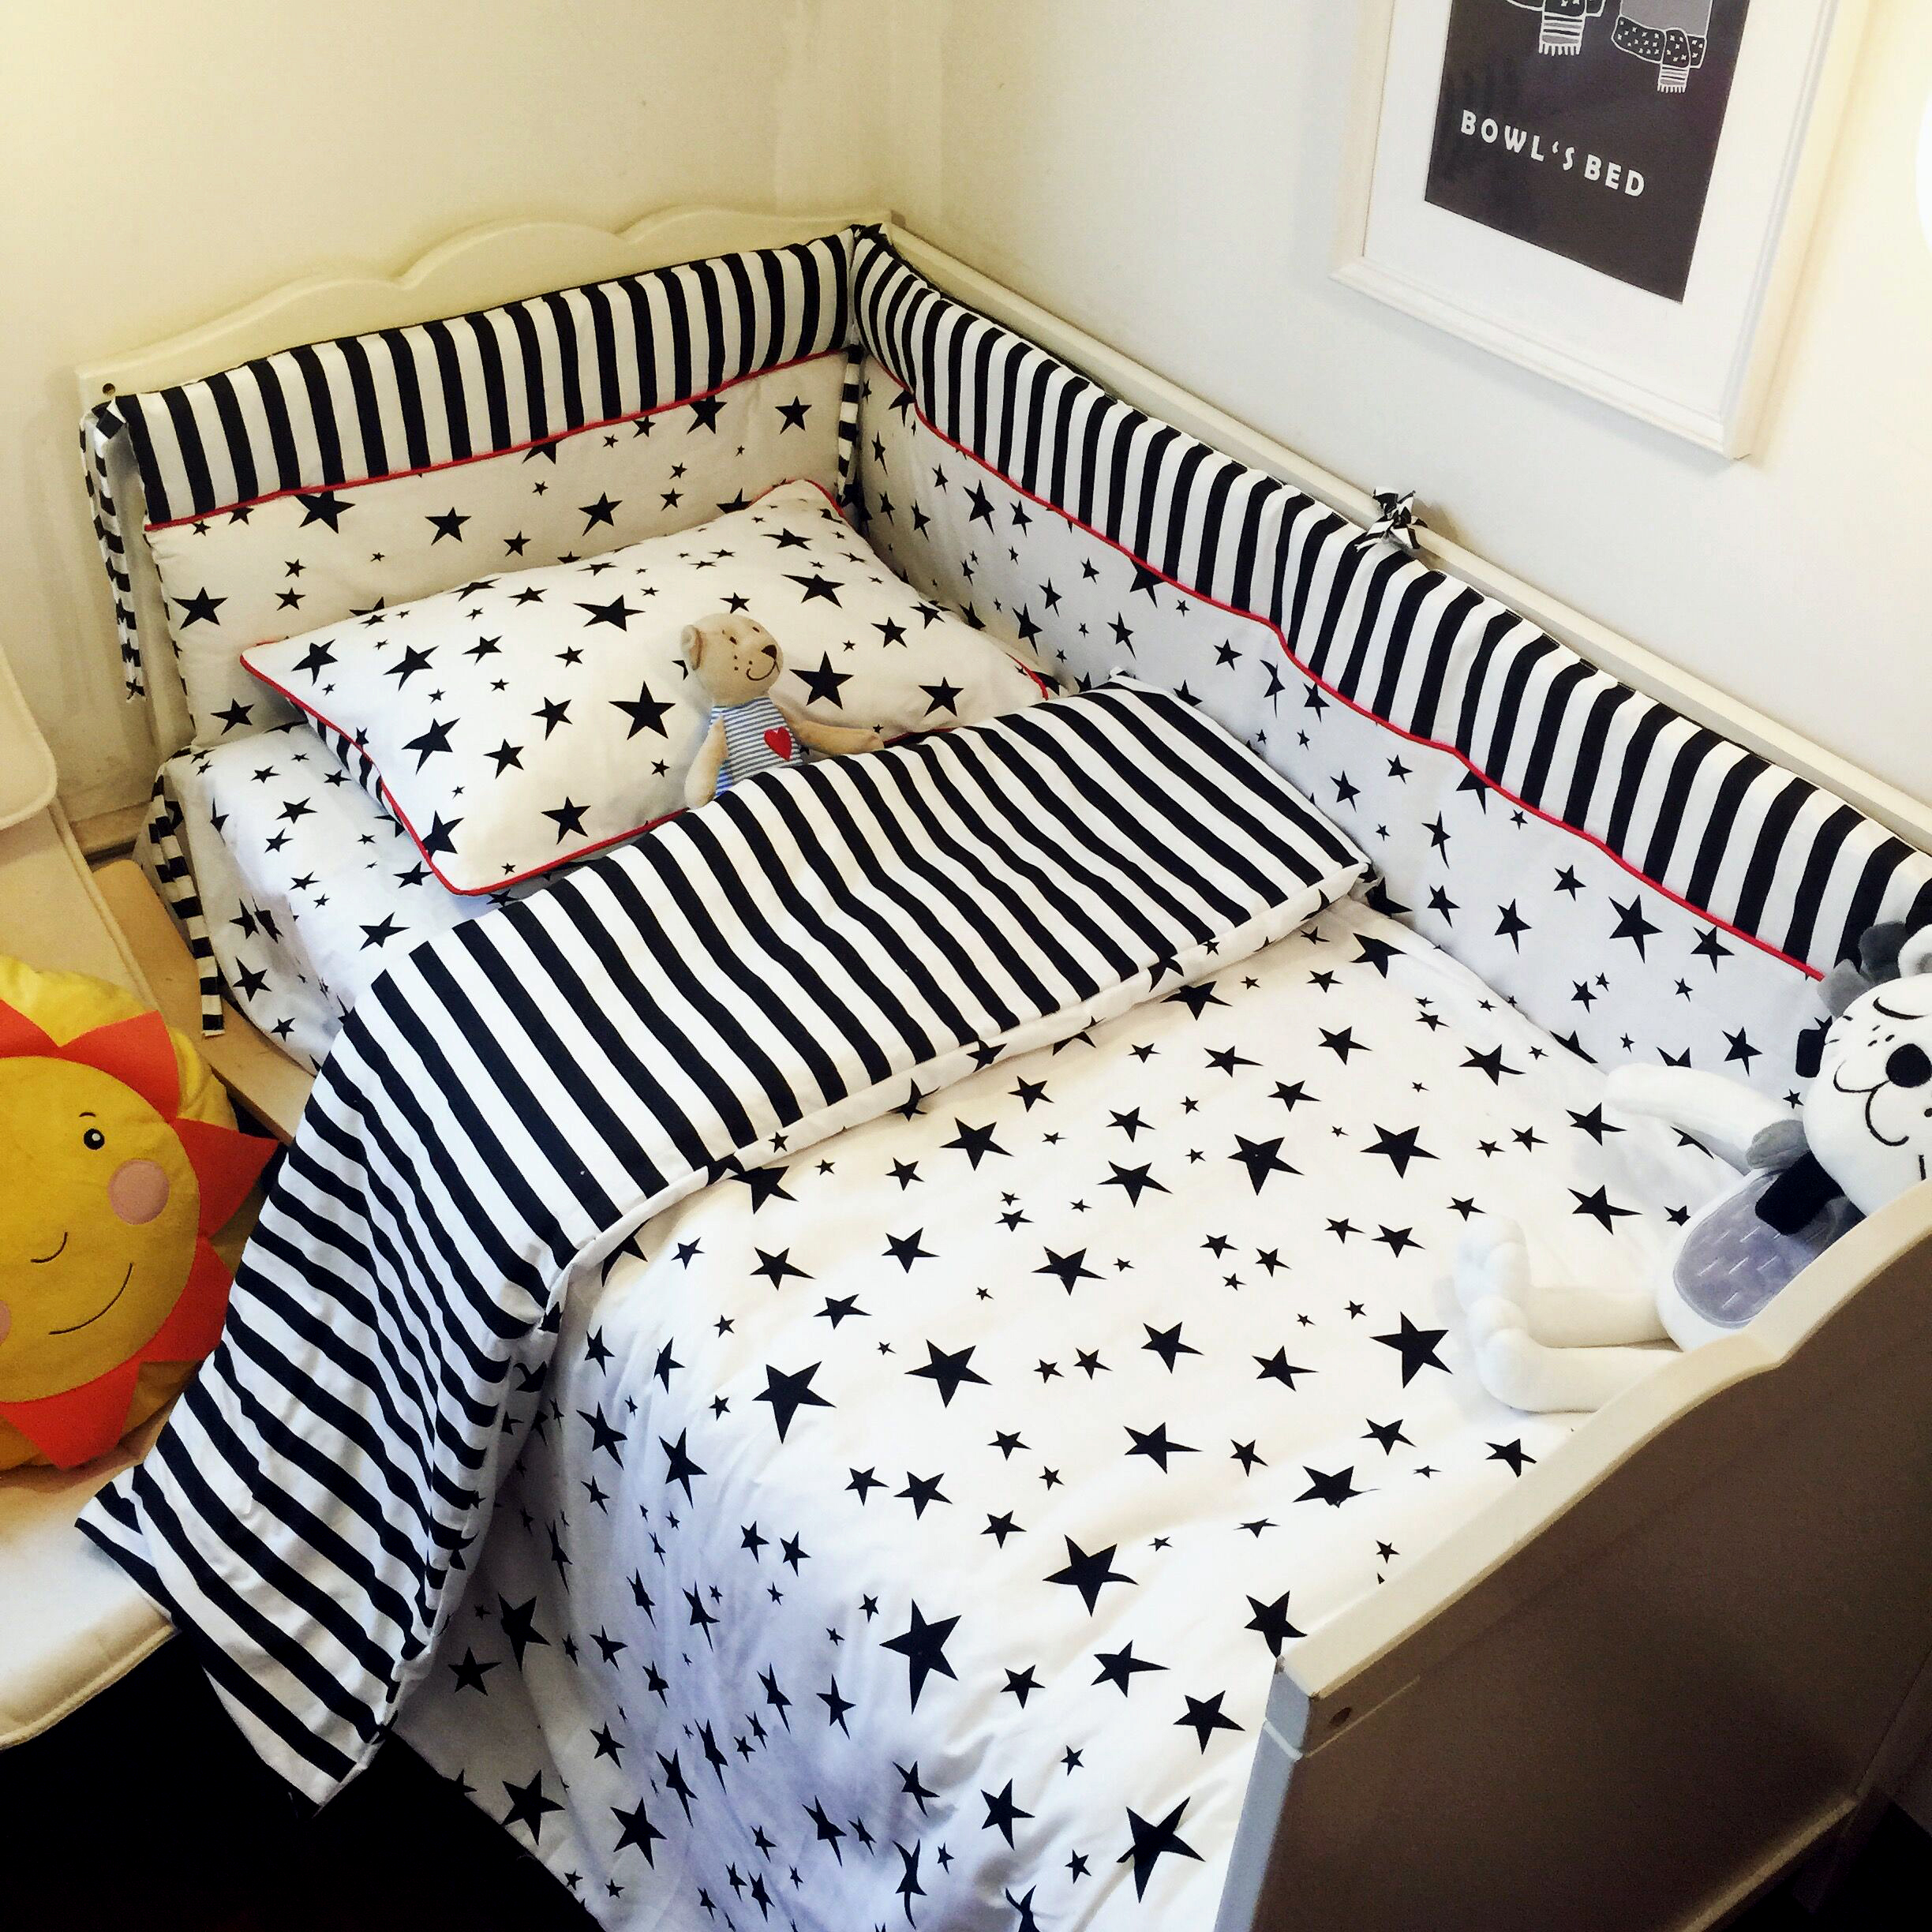 Baby Bedding Set Classic Starry Soft Cotton Printed No Fluorescent Bedding Newborn Around Bumper Bed Sheet Quiltcover Pillowcase